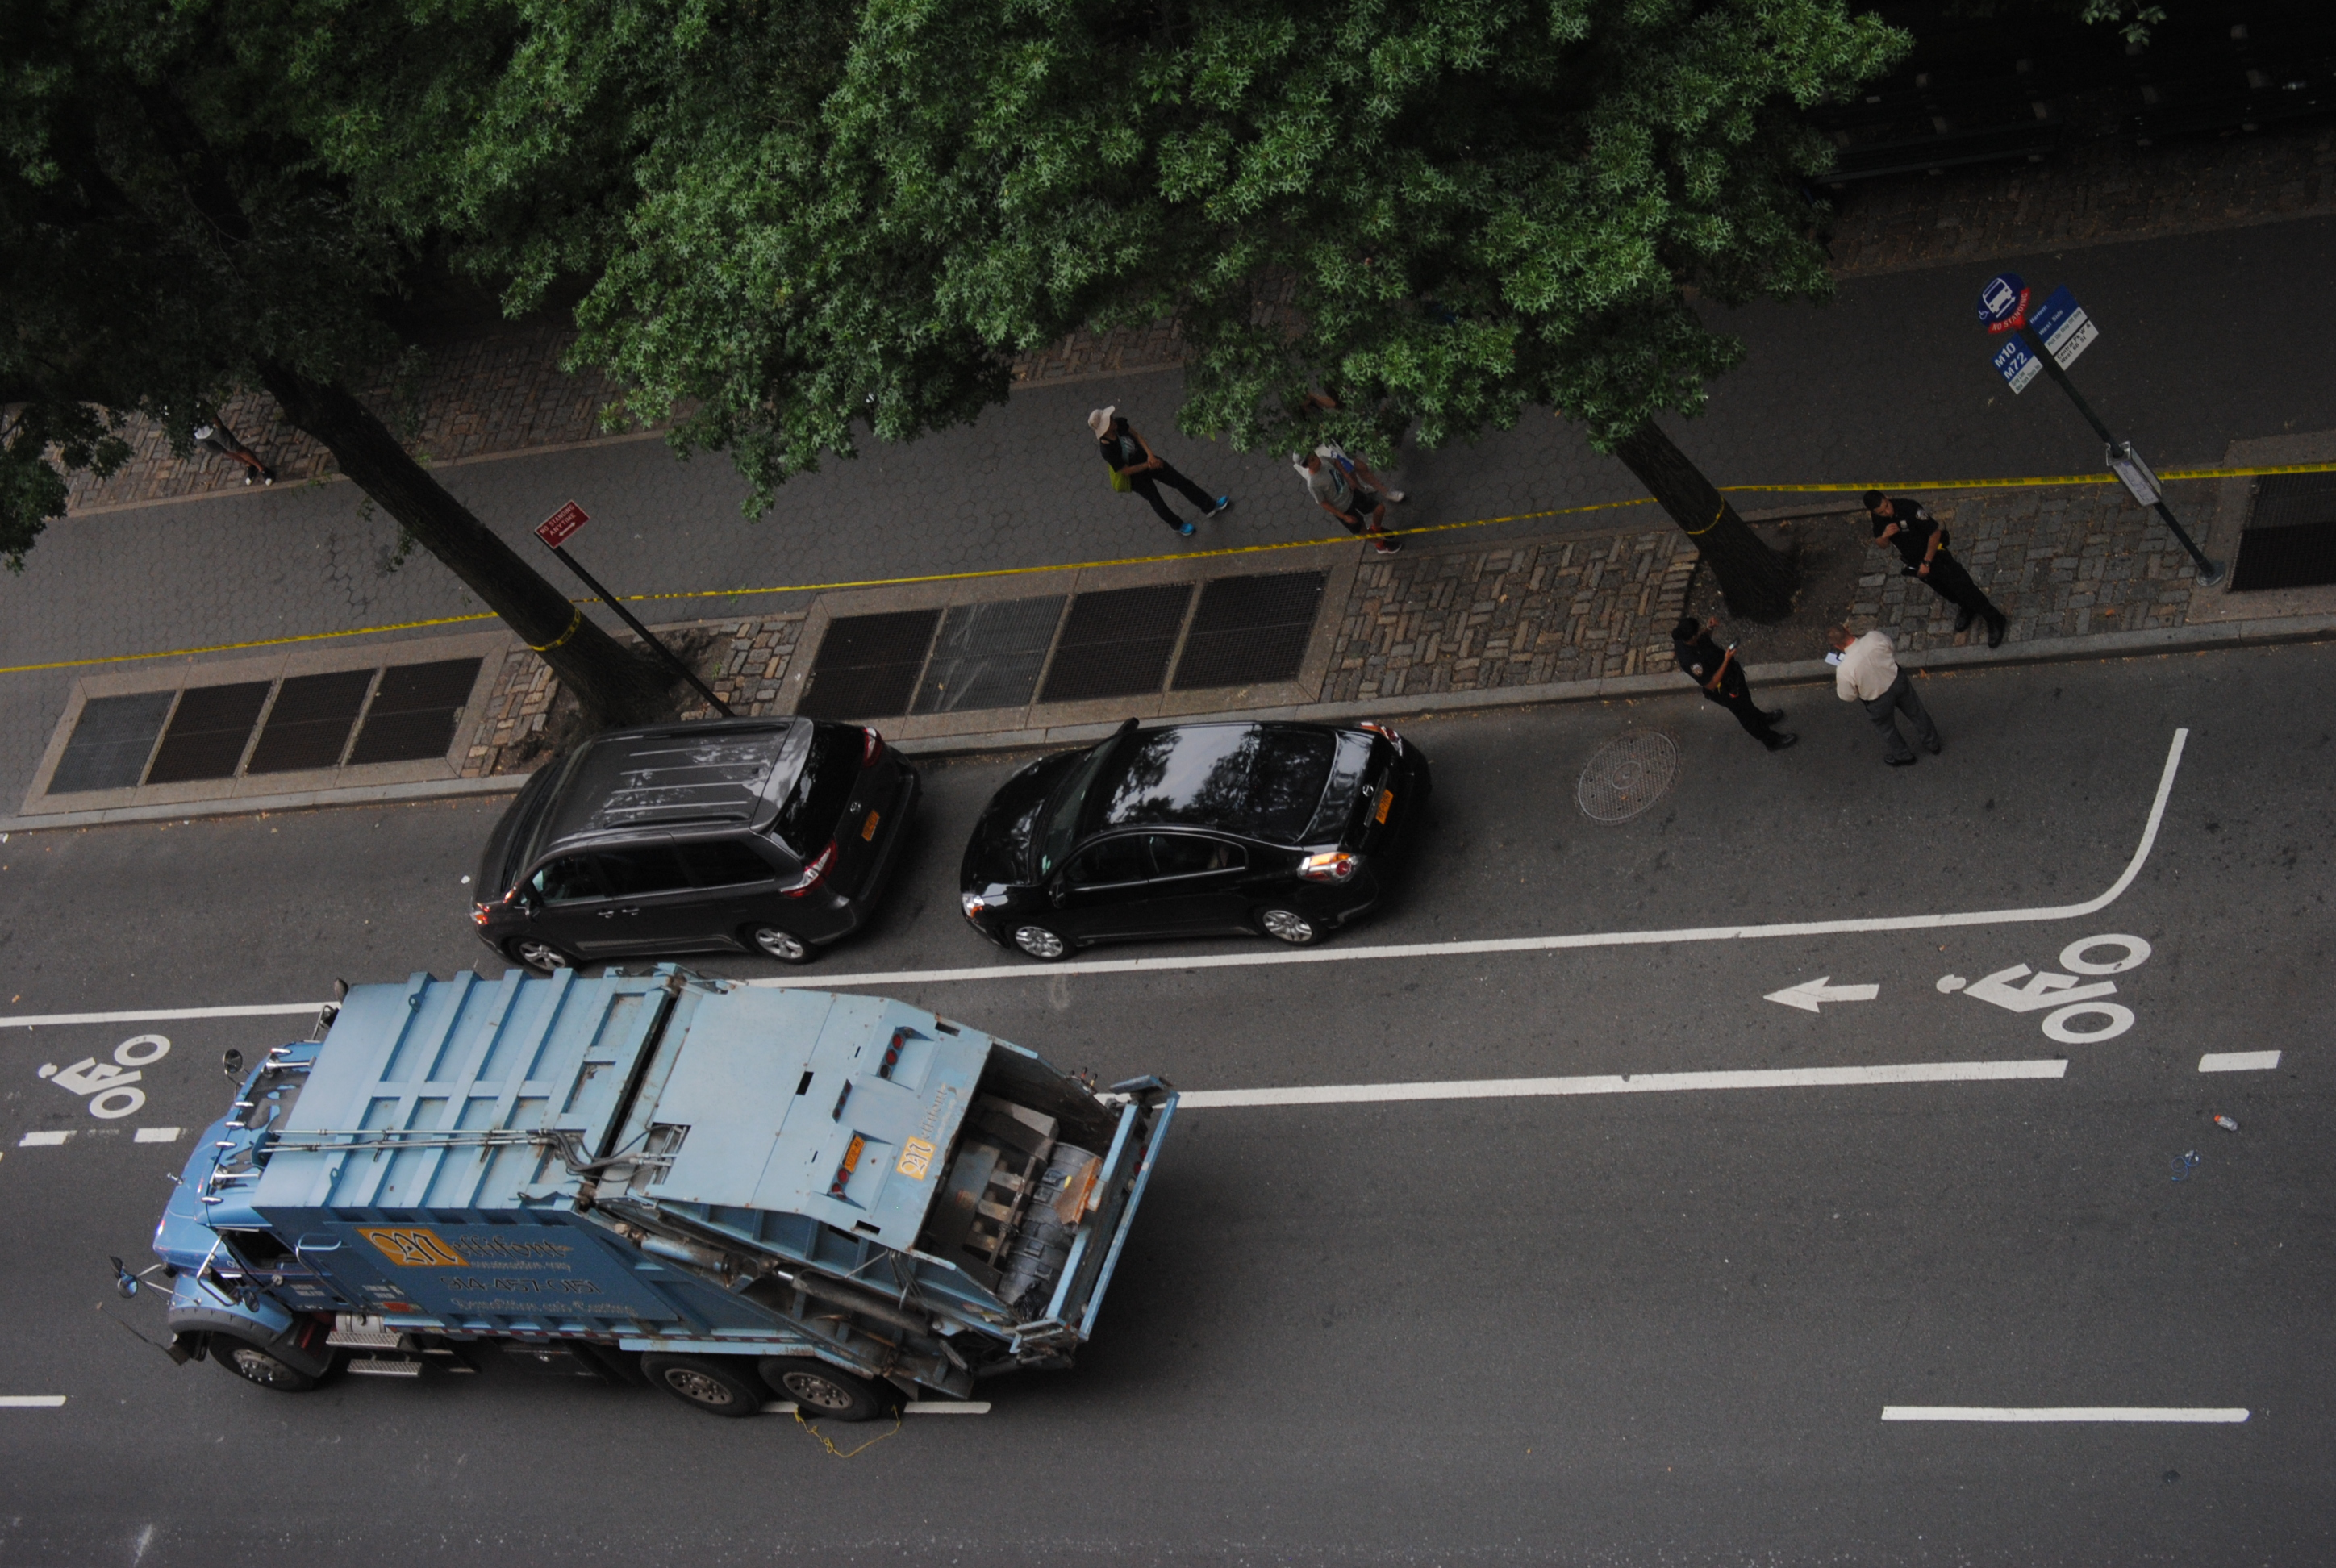 private garbage truck involved in New york fatal bicycle accident